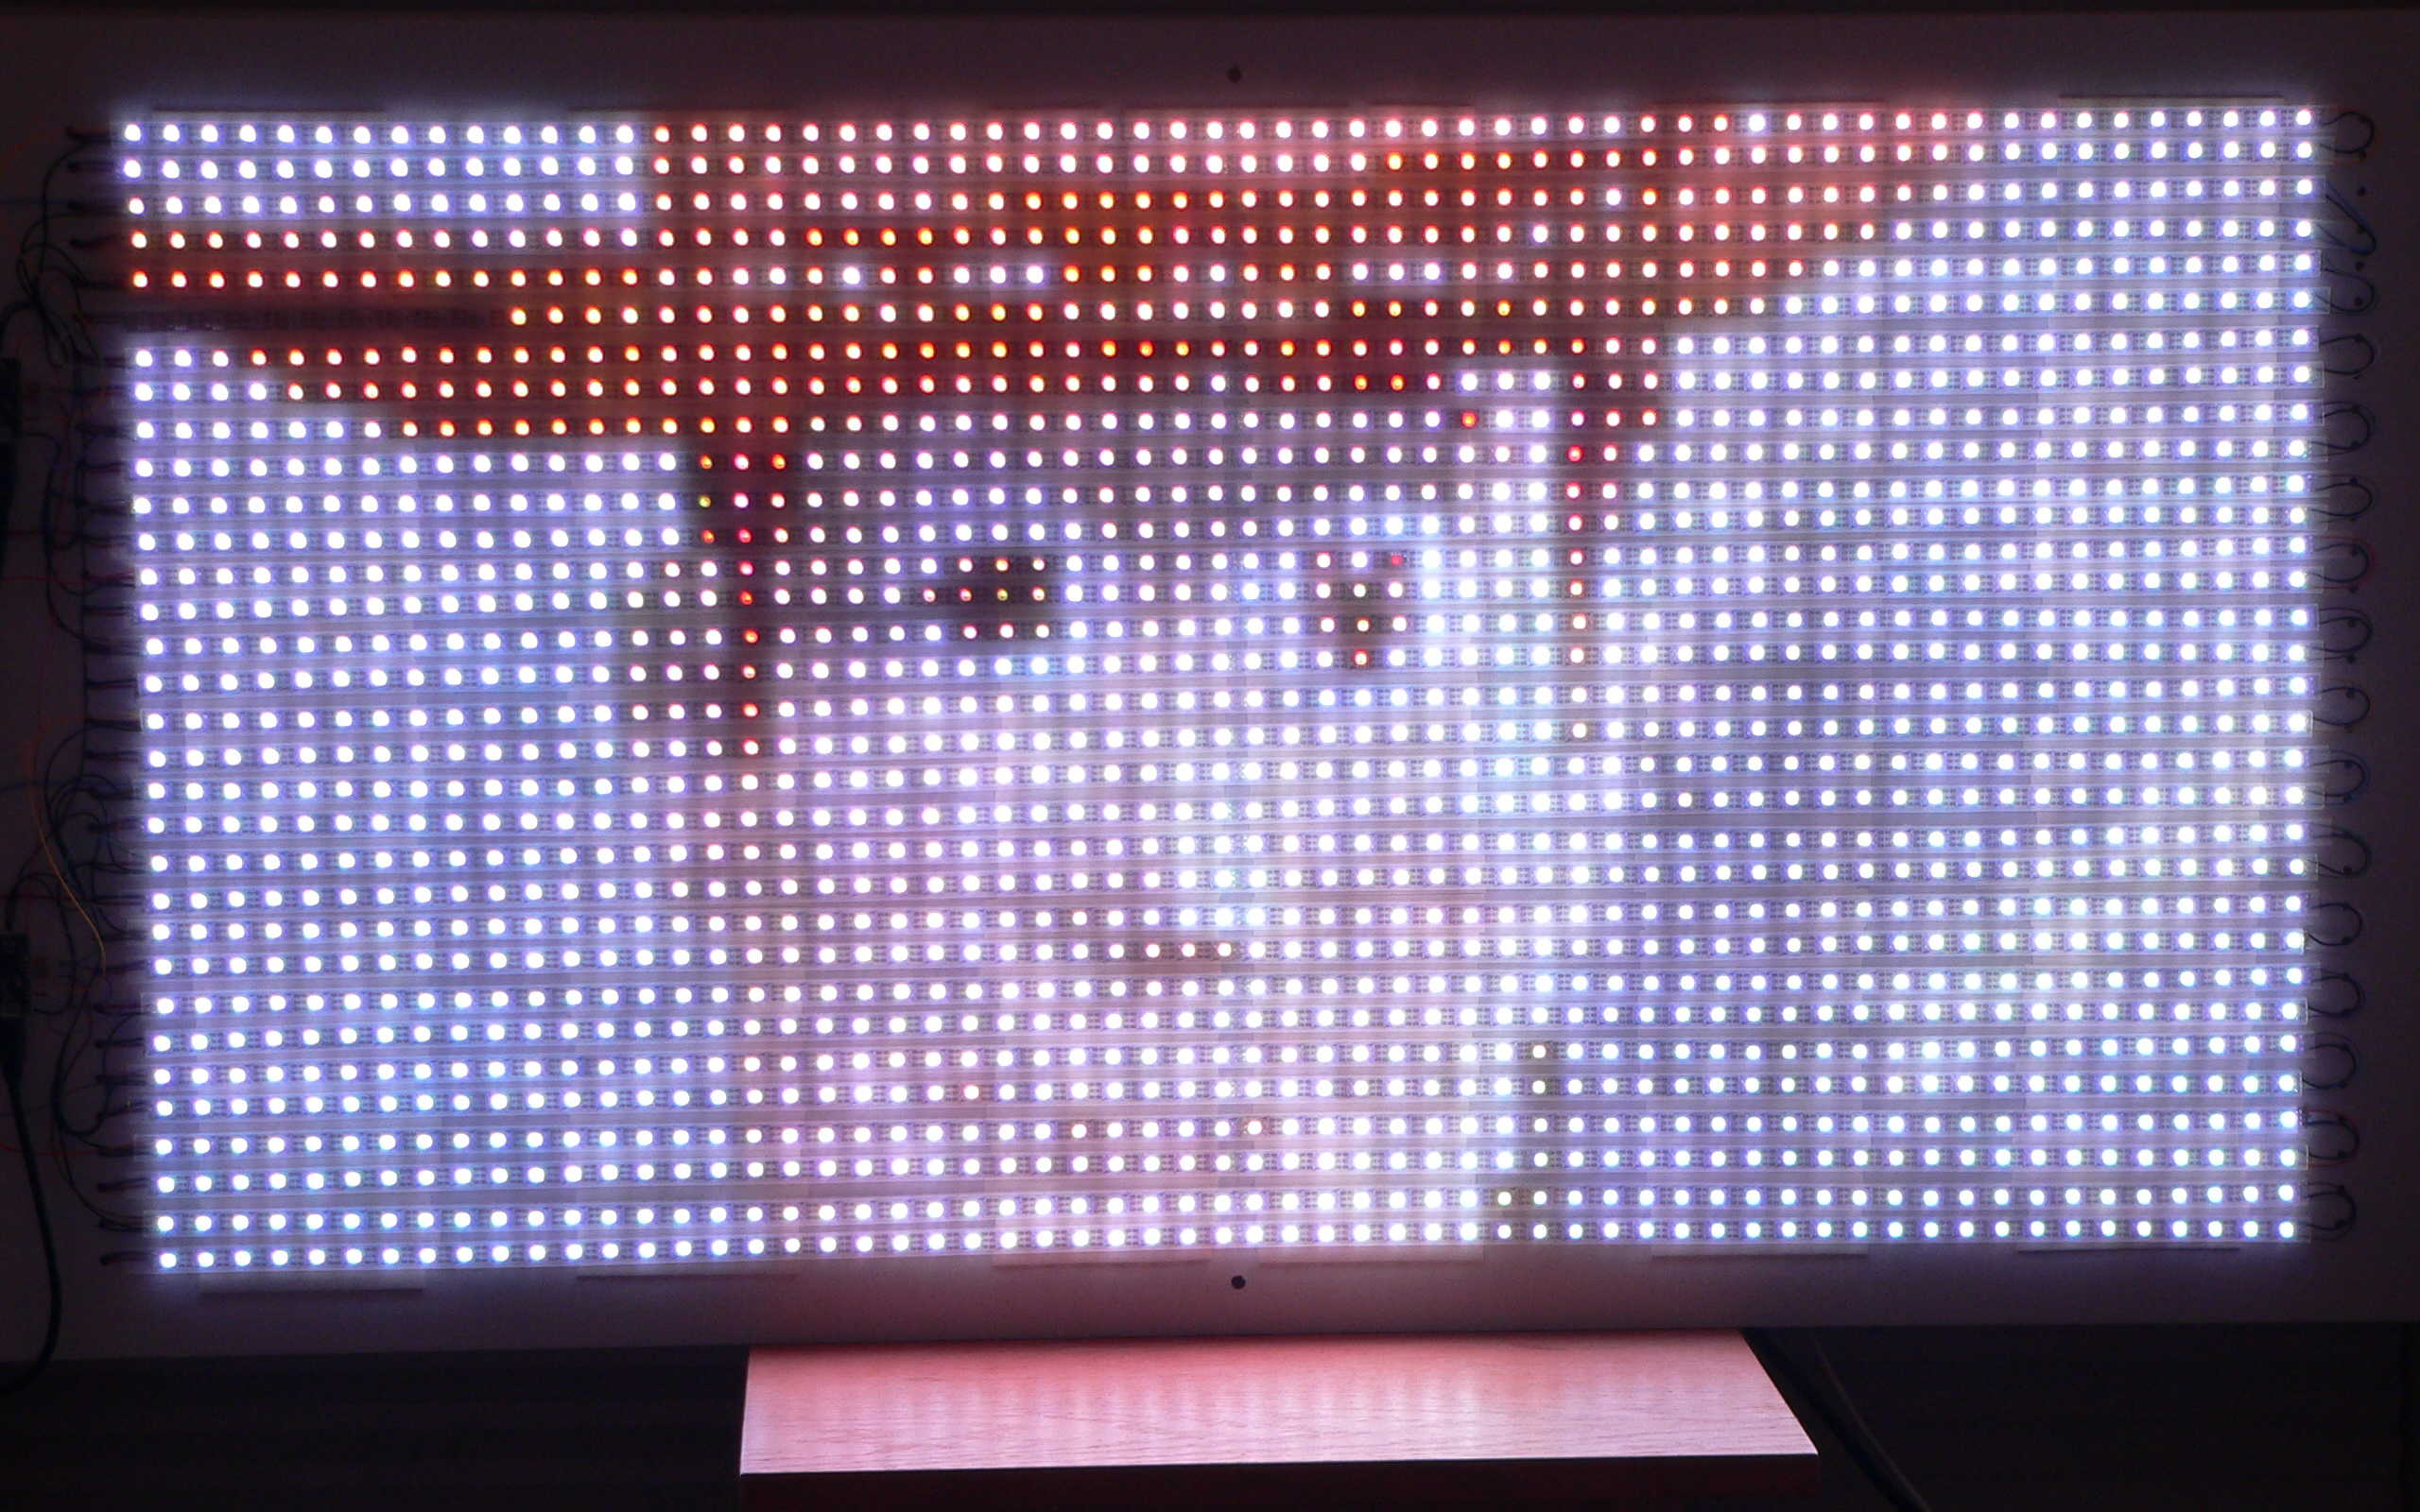 Octows2811 Led Library Driving Hundreds To Thousands Of Ws2811 Leds Drives 10 Actual Display On 1920 View Large Original Image